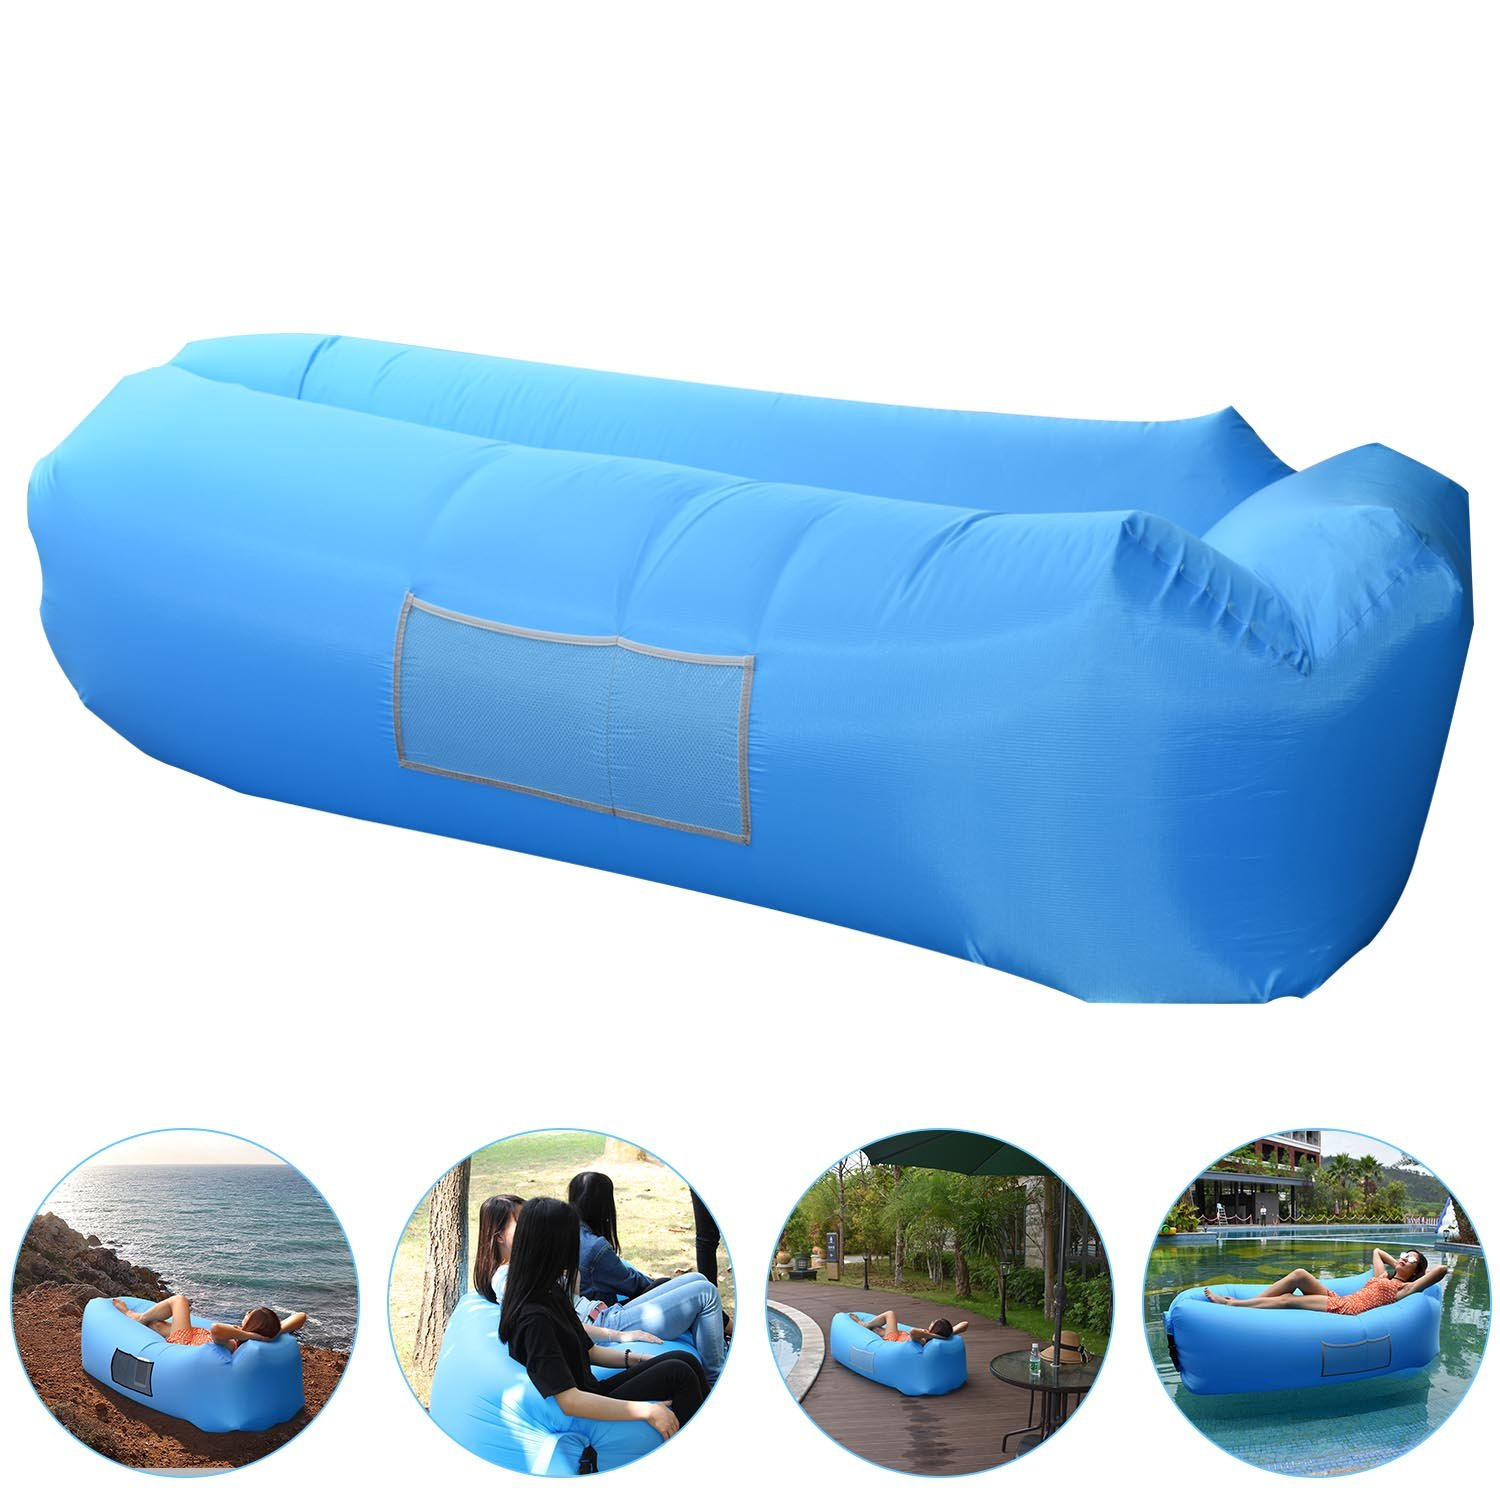 Sofa Hinchable, AngLink Sofa Inflable Portatil Impermeable Durable Ligero Poliéster Sofá al Aire Libre Aire con Almohada para Camping, Playa, Parque, Patio